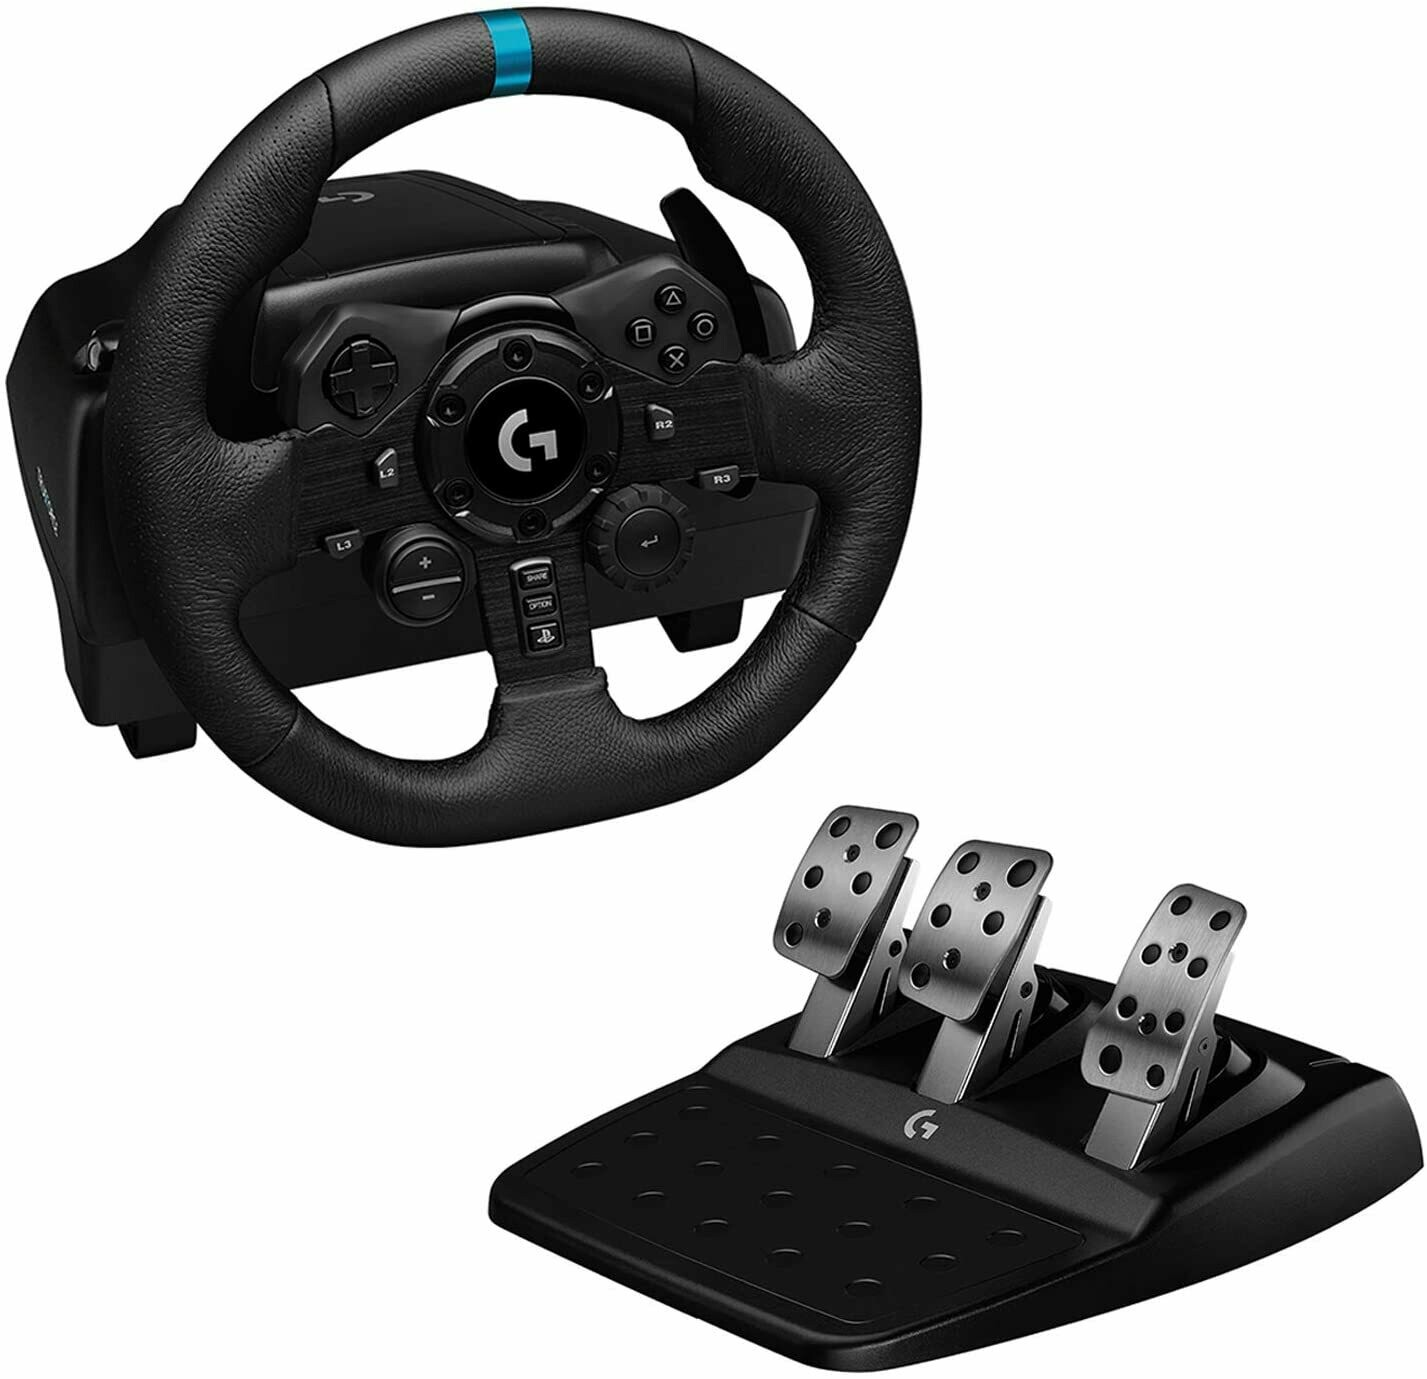 Logitech G923 Racing Wheel and Pedals, TRUEFORCE 1000 Hz Force